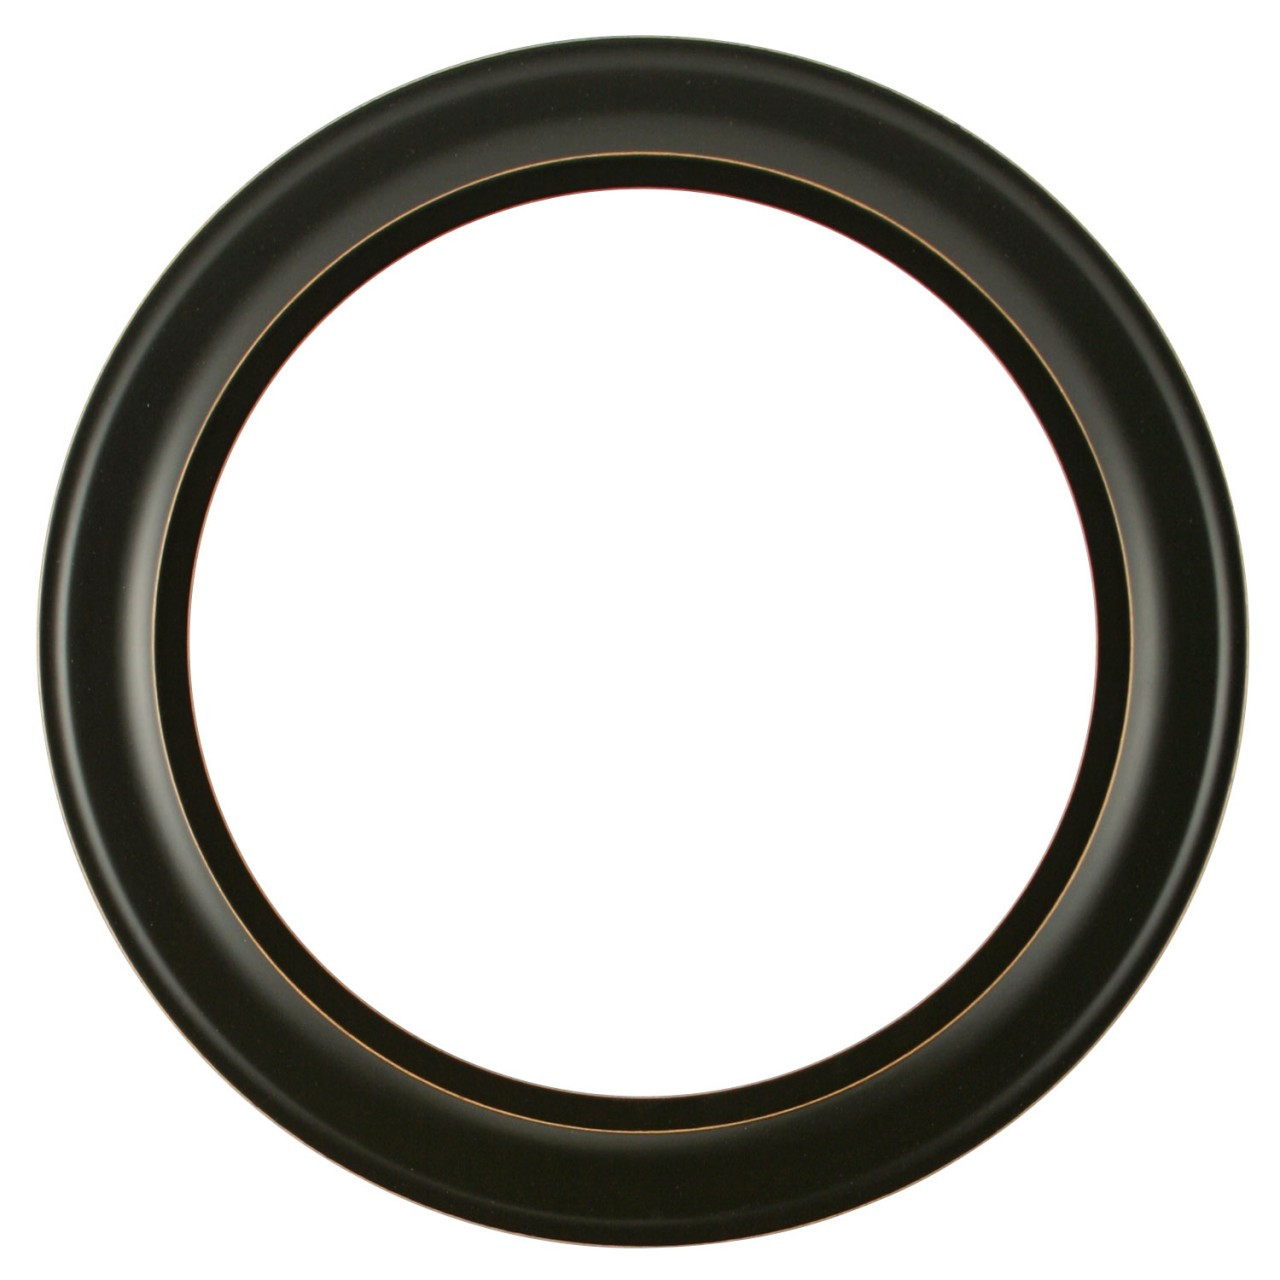 be8199d3854 Round Frame in Rubbed Black Finish